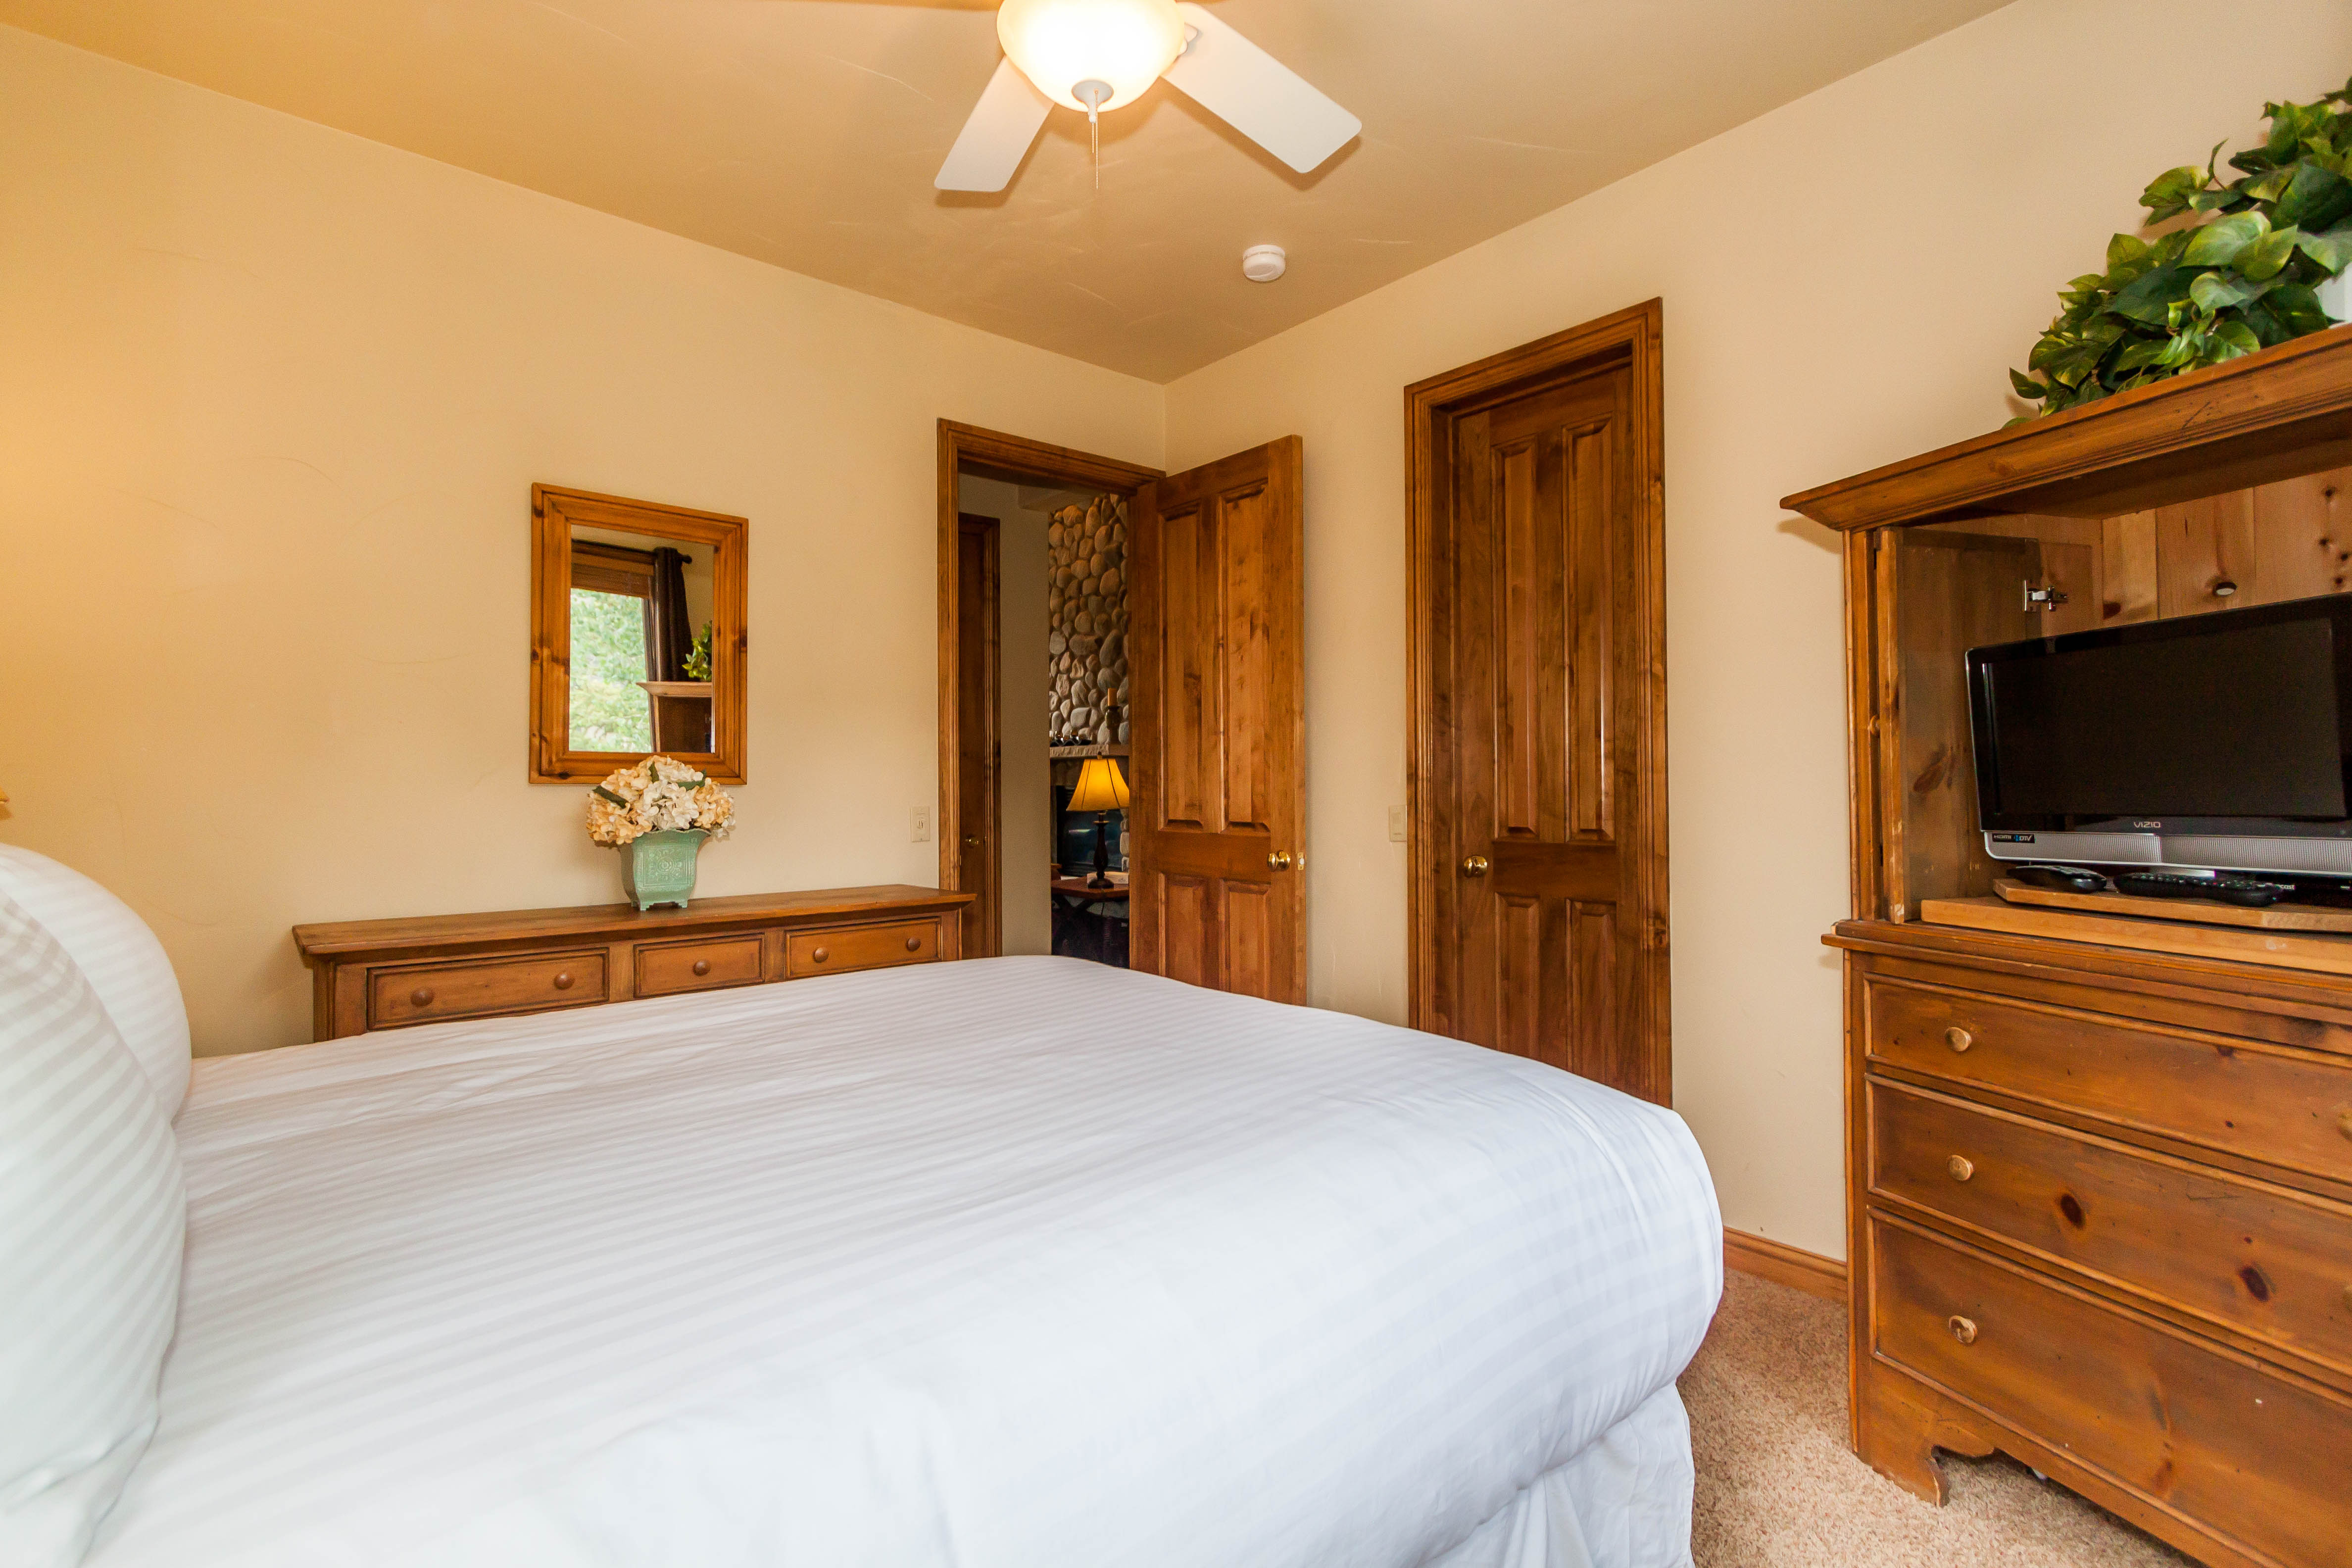 The first guest bedroom features a queen-sized bed with Ivory White Bedding and a flat screen TV.